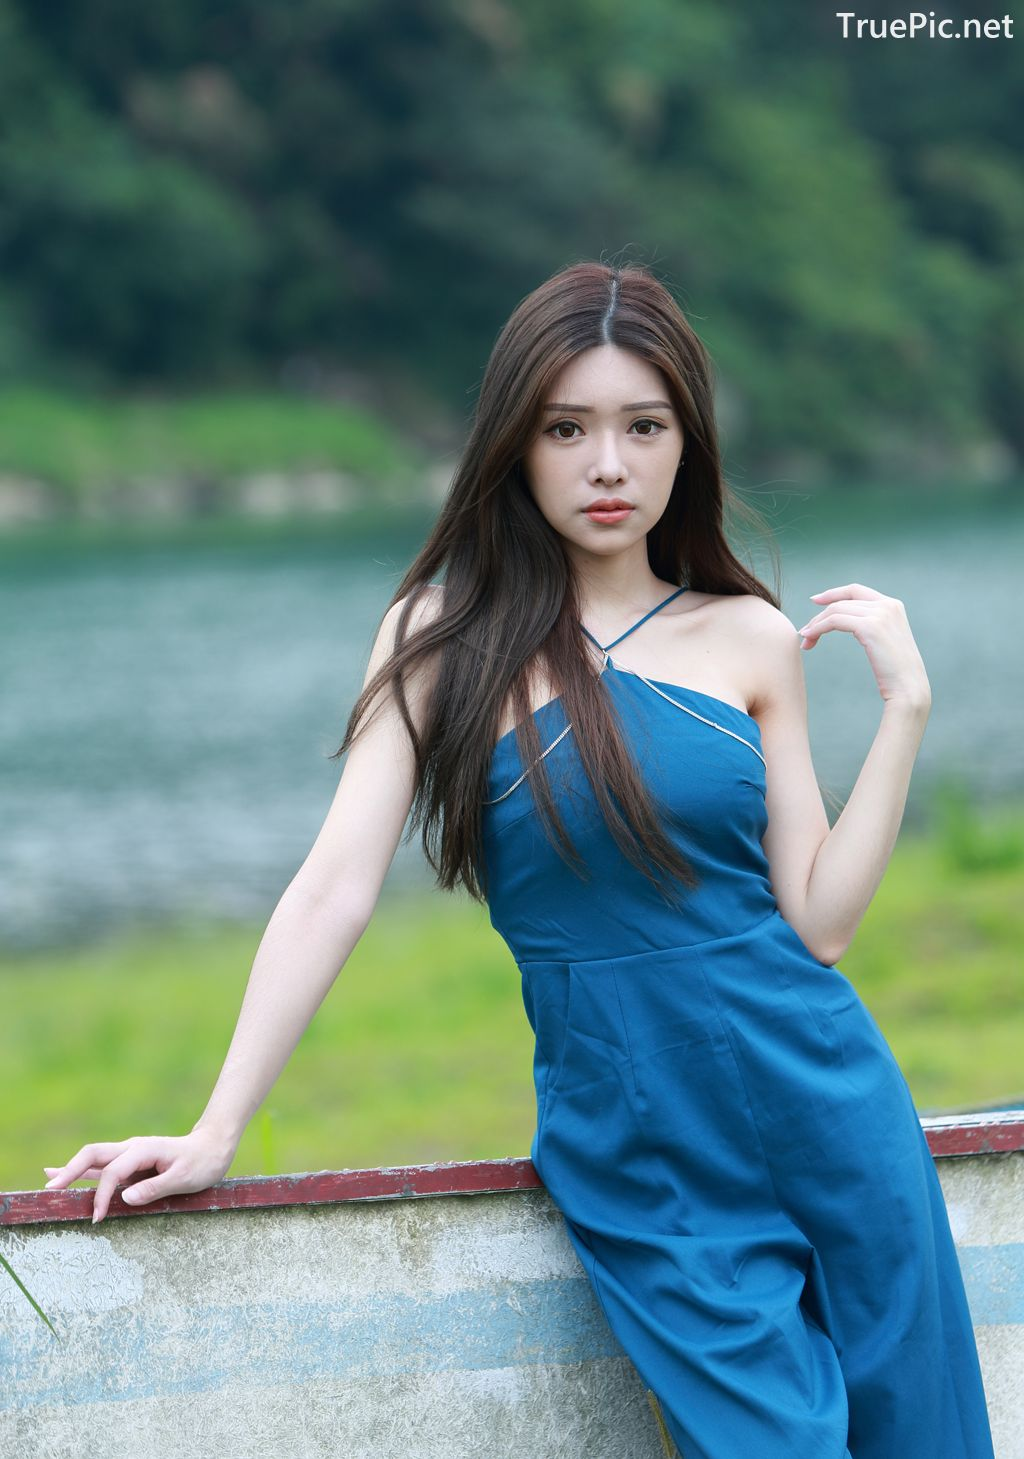 Image-Taiwanese-Pure-Girl-承容-Young-Beautiful-And-Lovely-TruePic.net- Picture-3